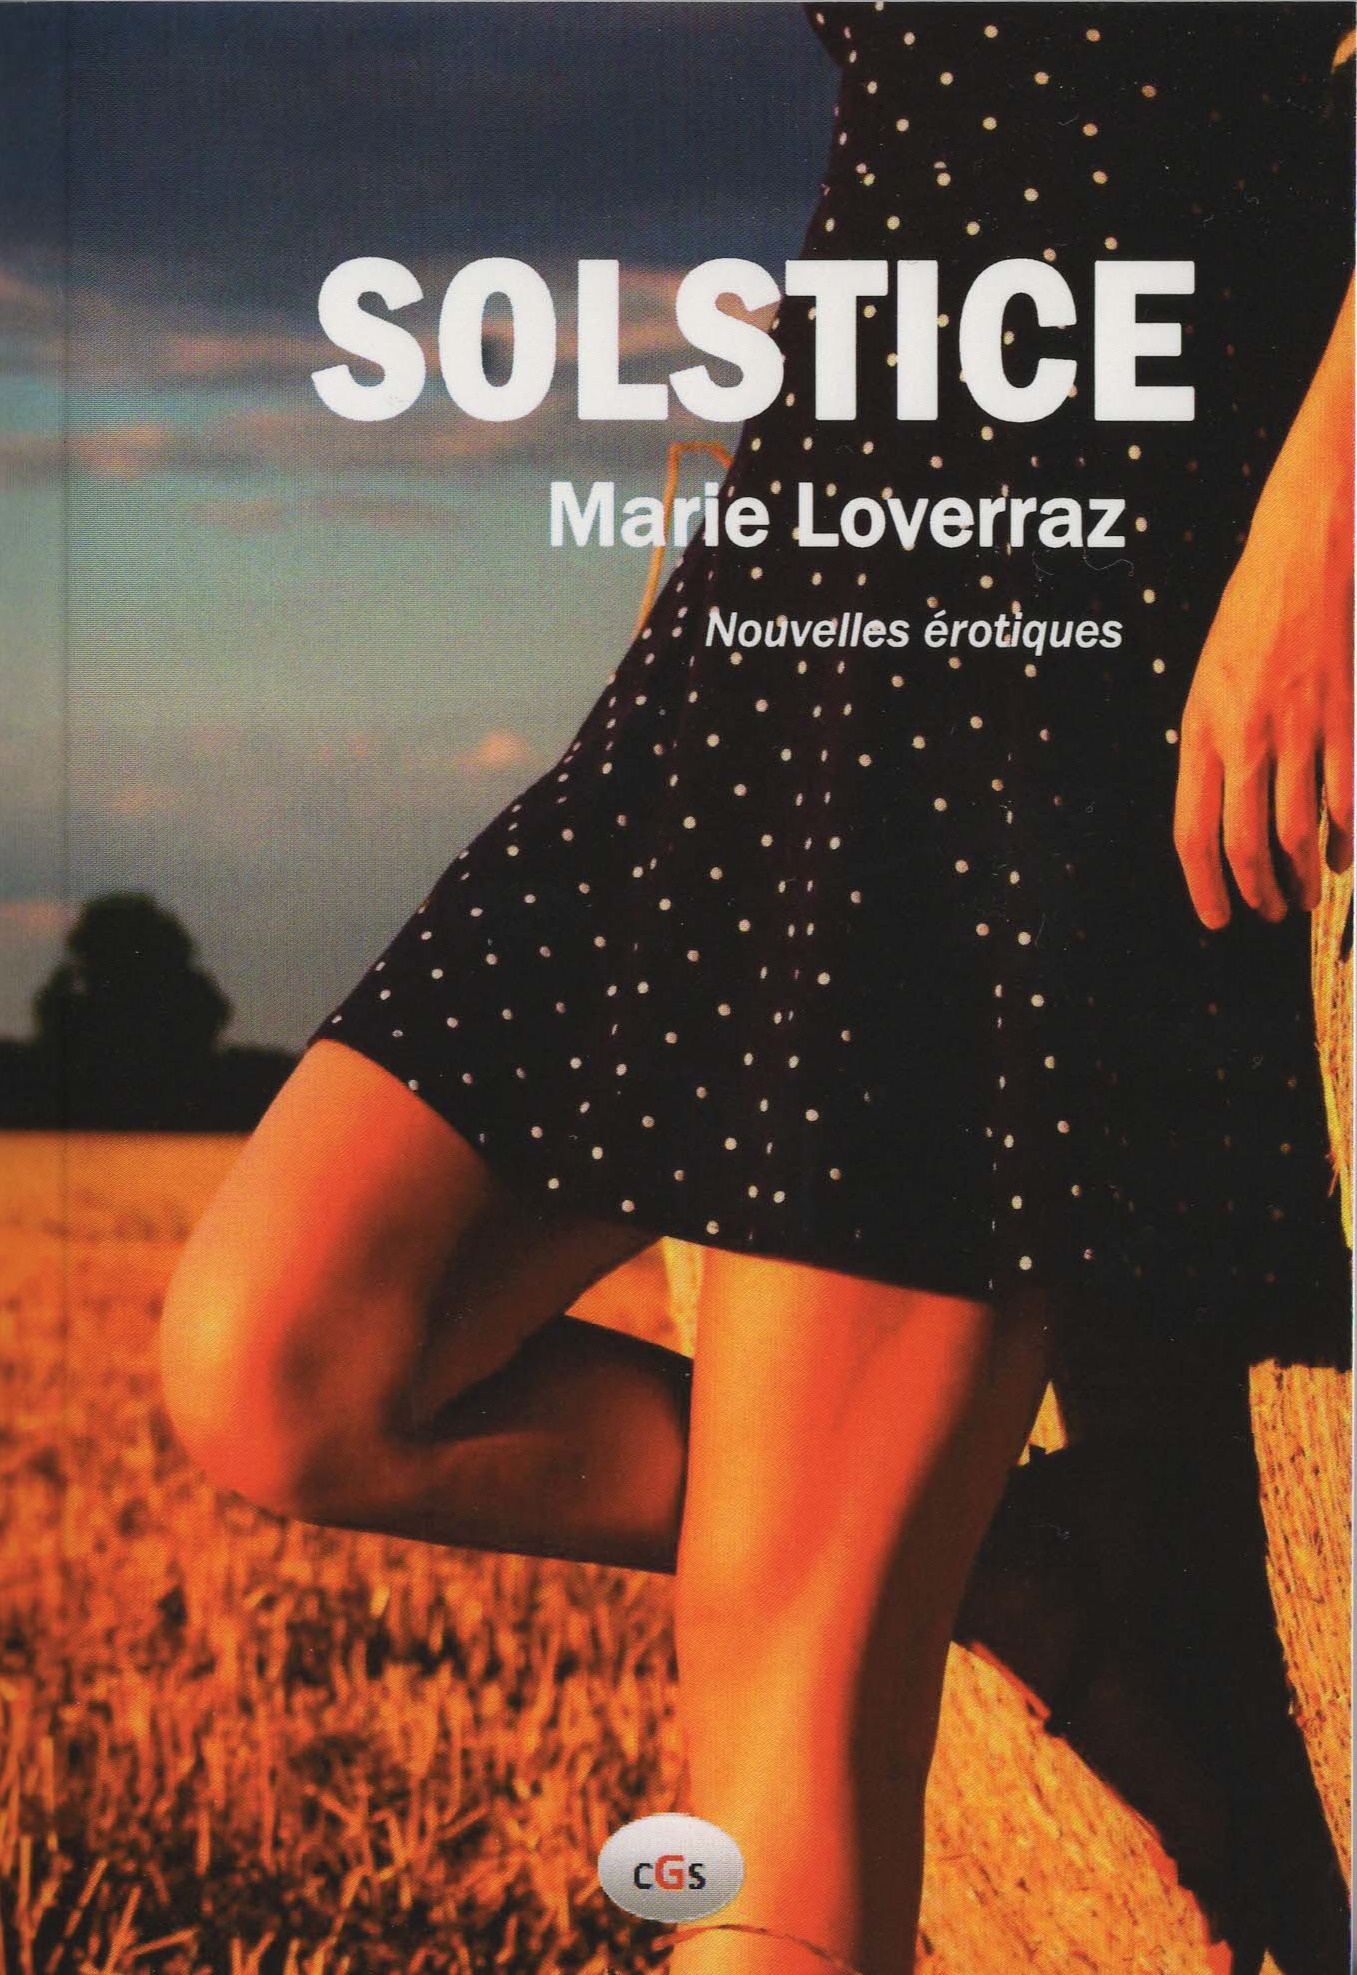 Couverture Solstice recto